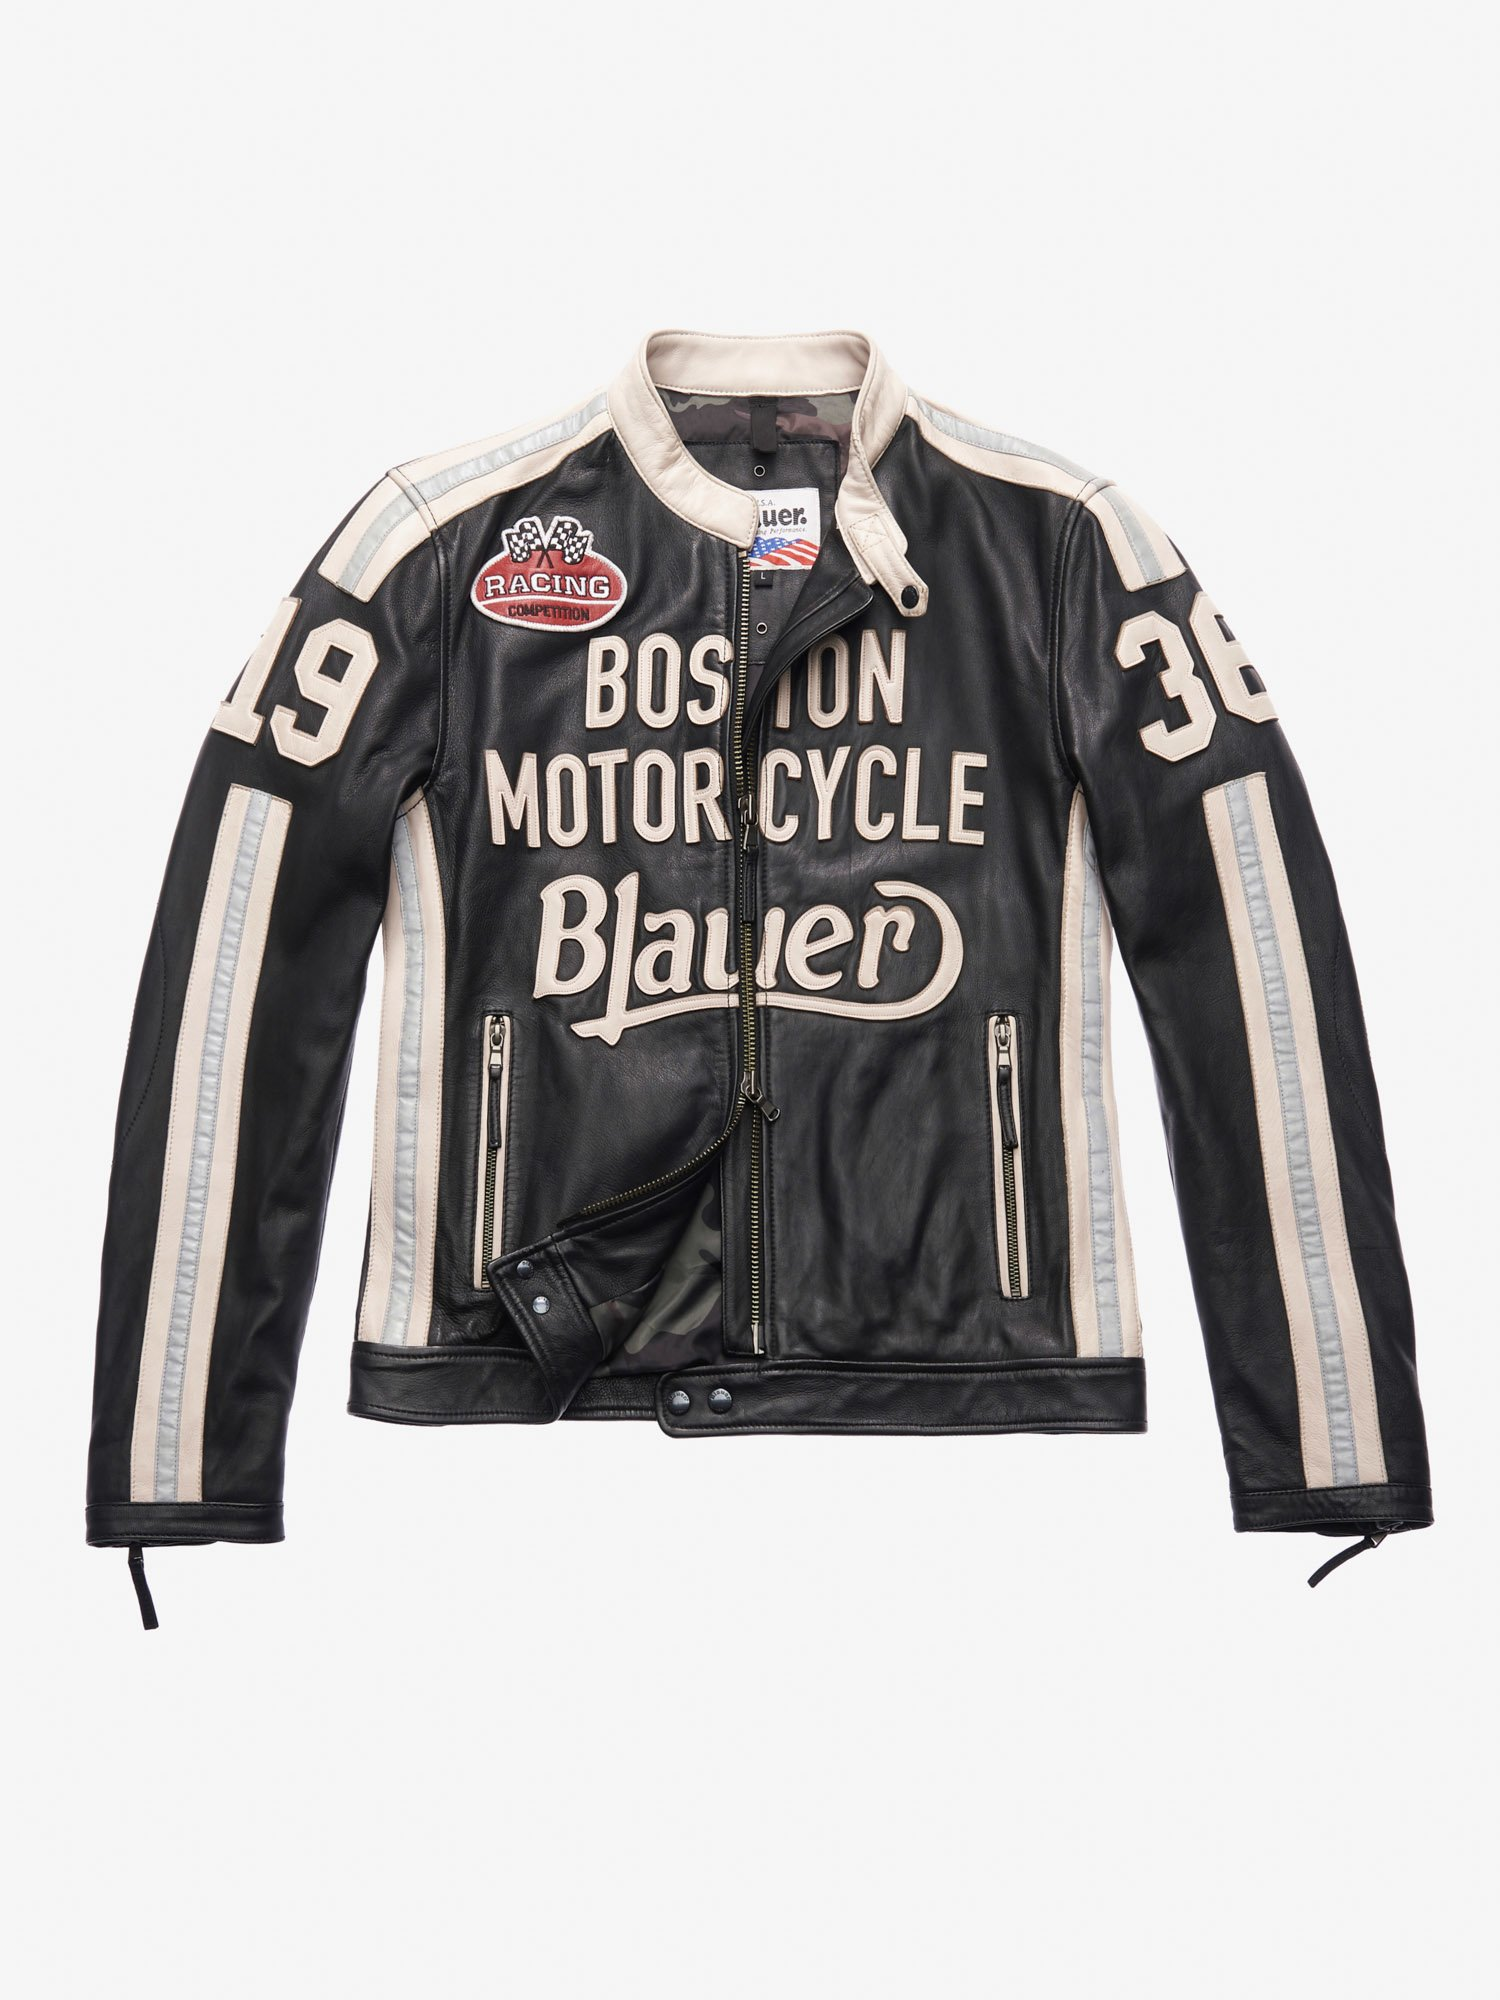 THOMAS LEATHER MOTORCYCLE JACKET - Blauer